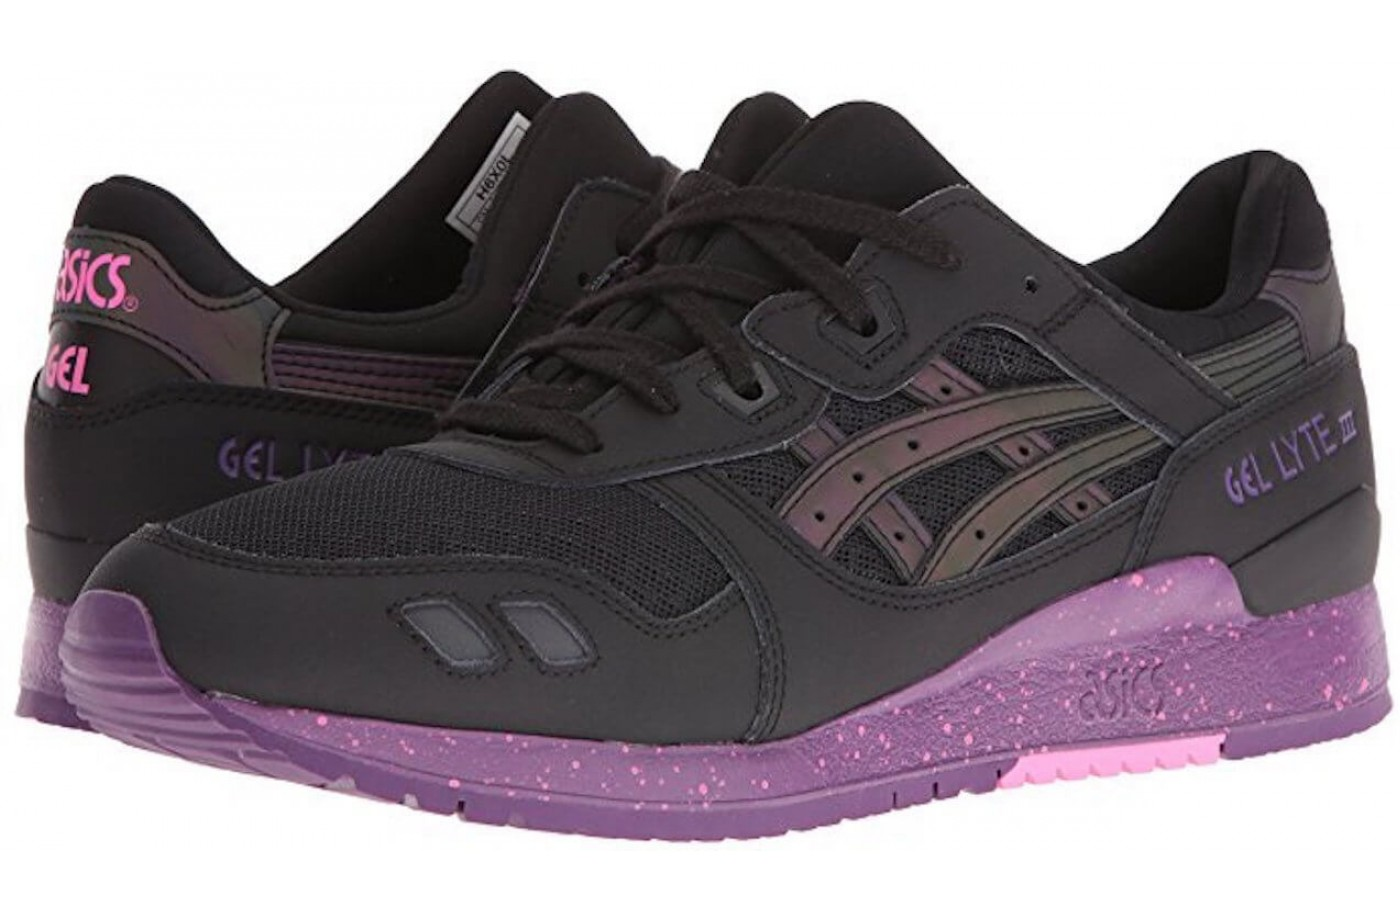 The Asics Gel Lyte III is available in an array of styles